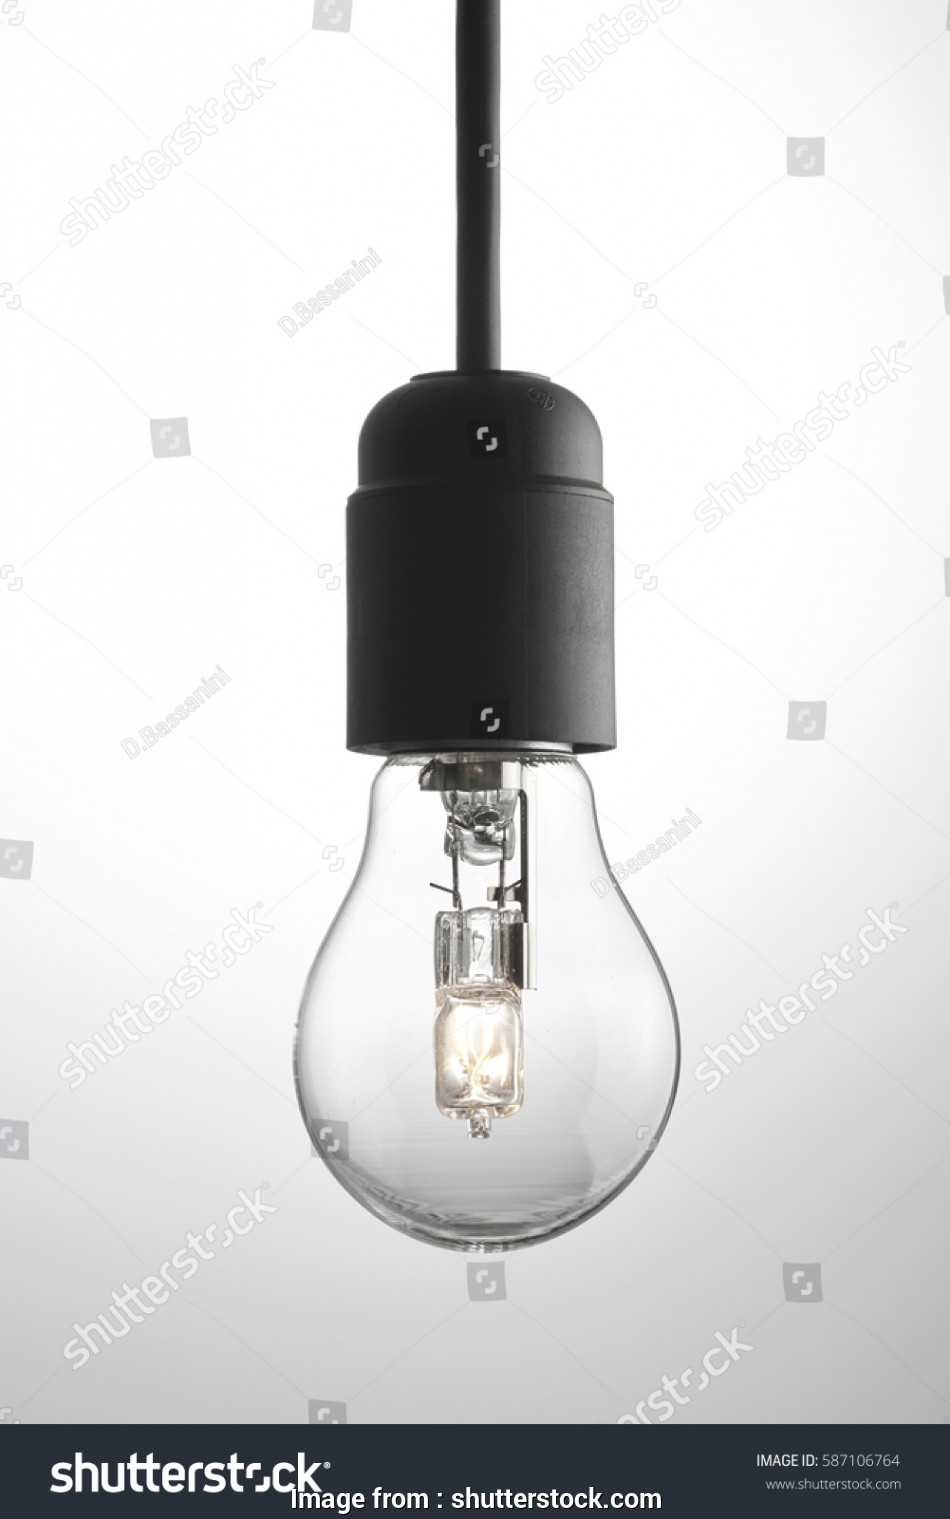 how to wire a ceiling light bulb holder Light Bulb Wire Holder Stock Photo (Edit Now) 587106764, Shutterstock How To Wire A Ceiling Light Bulb Holder Most Light Bulb Wire Holder Stock Photo (Edit Now) 587106764, Shutterstock Photos